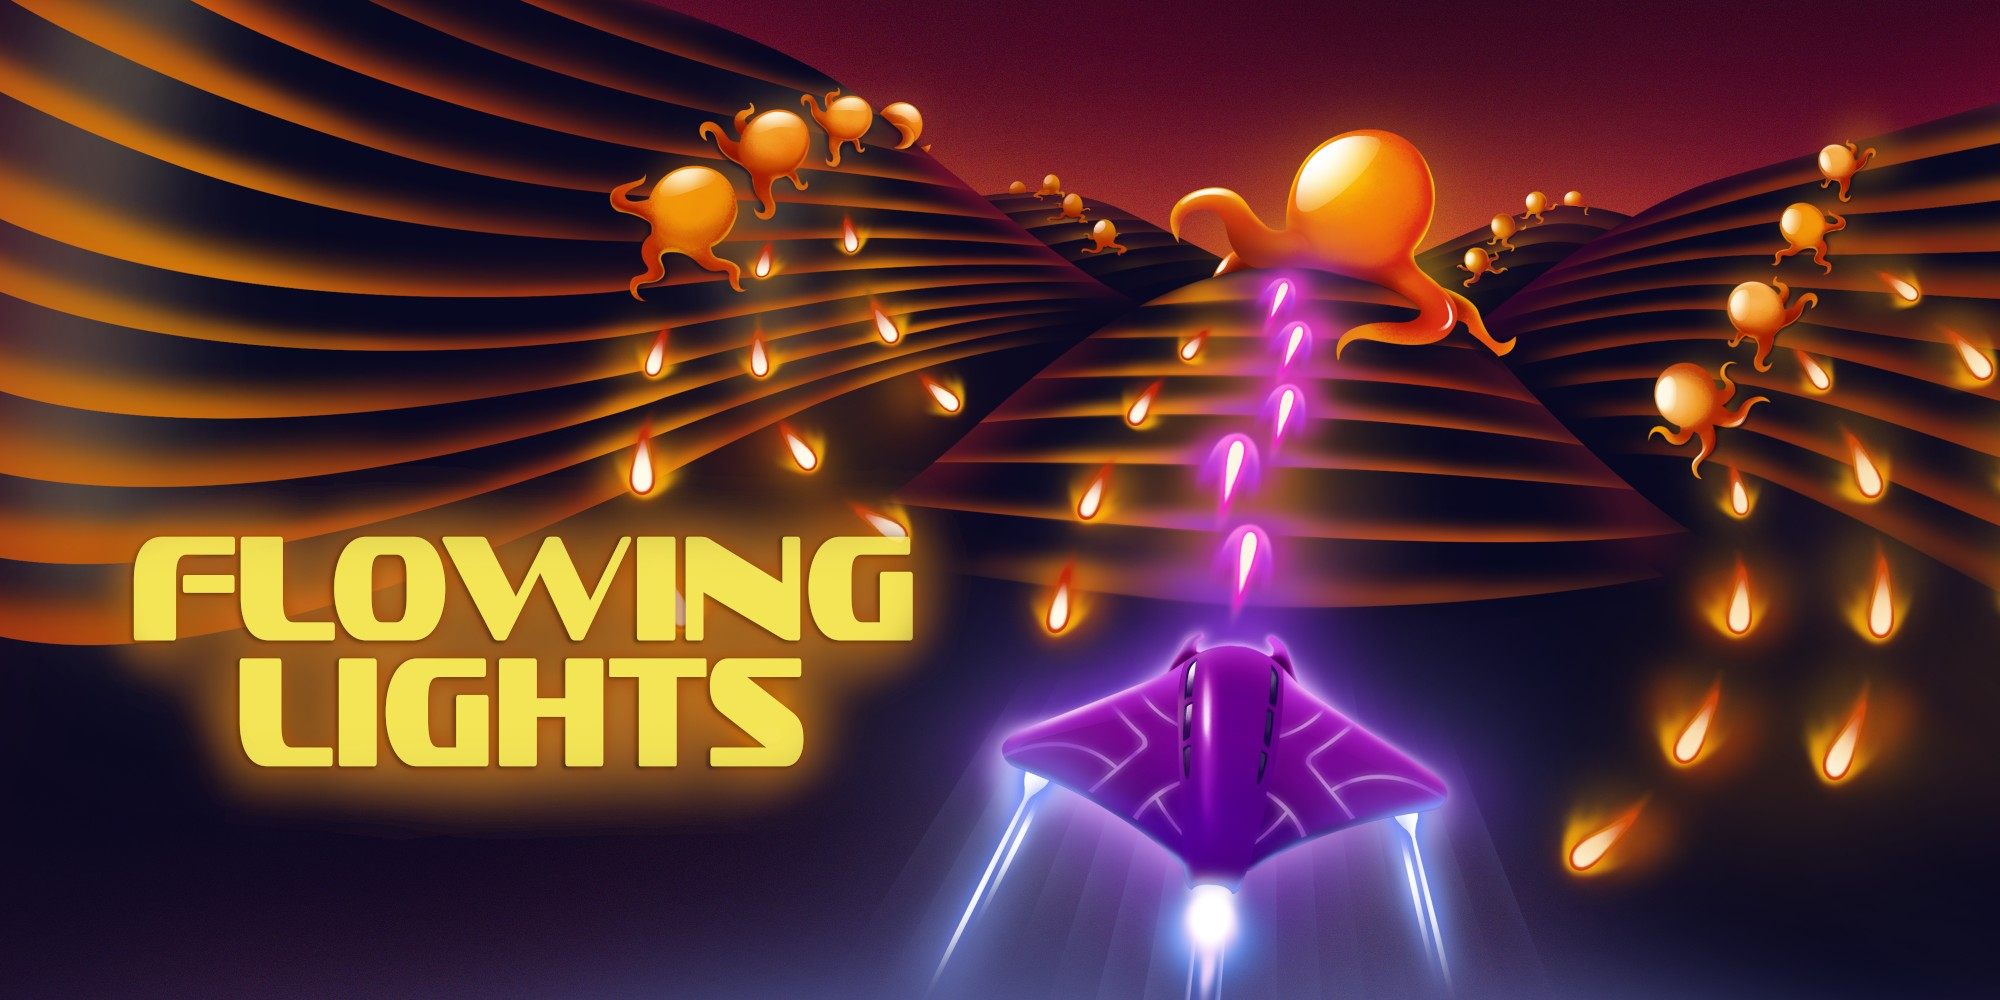 Flowing Lights Review